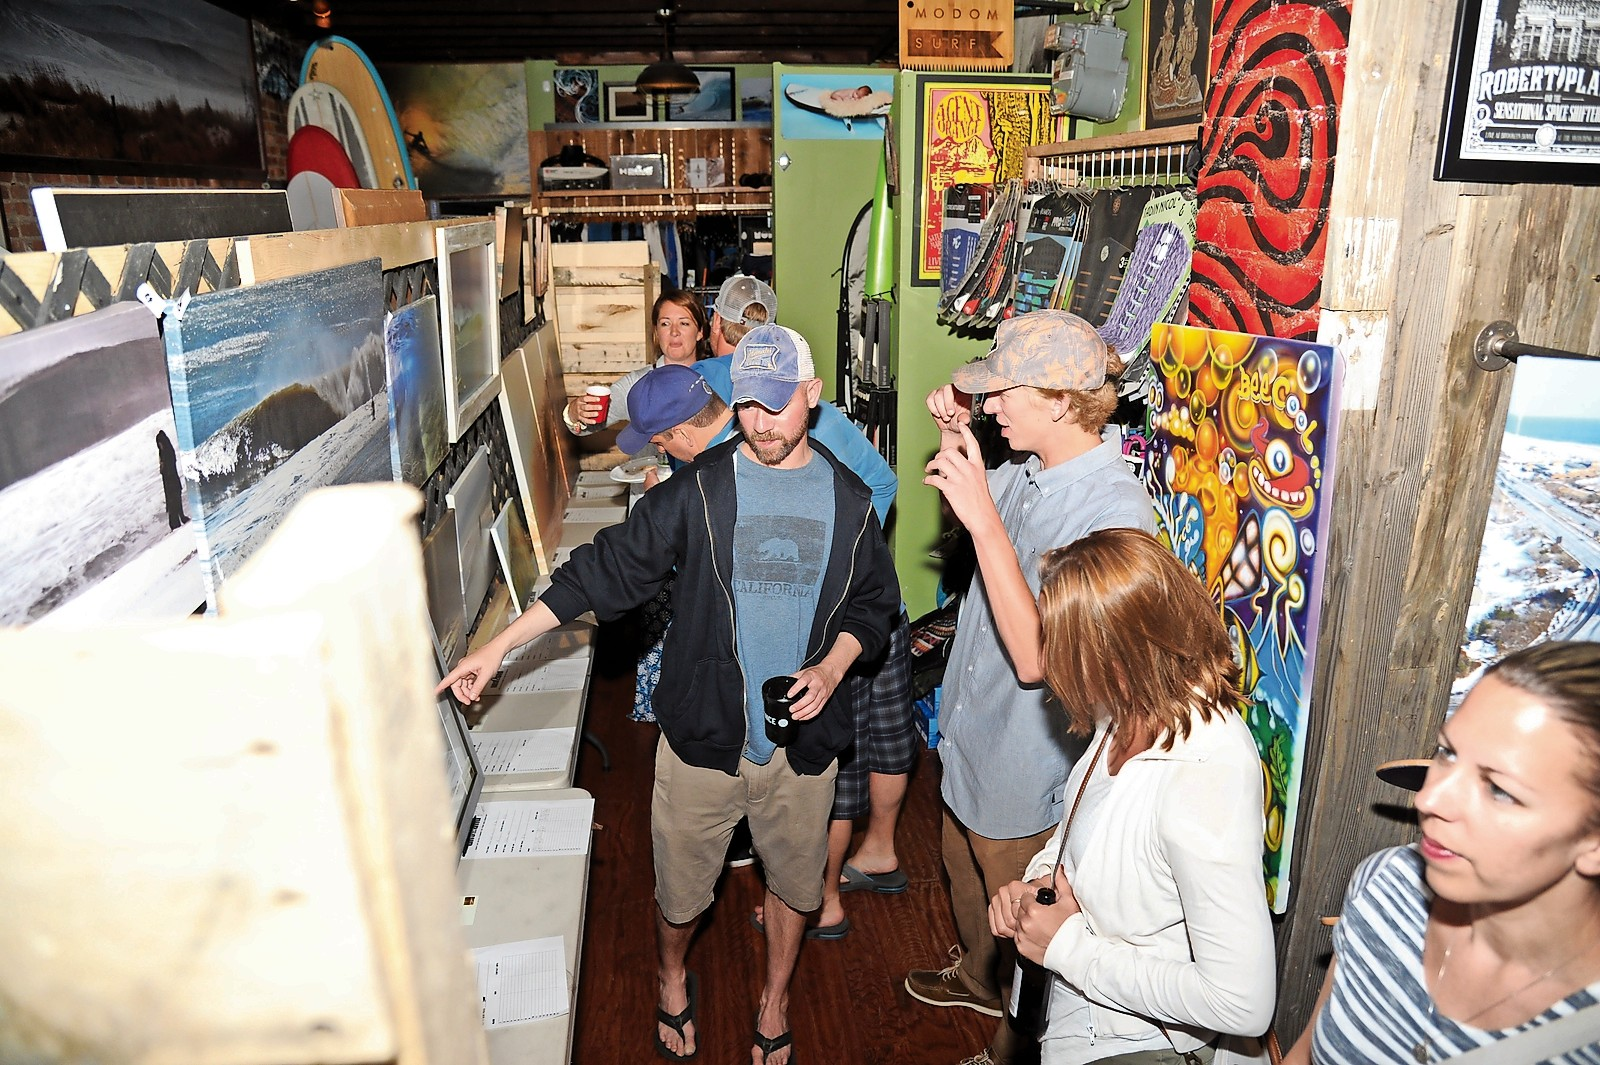 The art show event, now in its seventh year, attracted a large turnout.